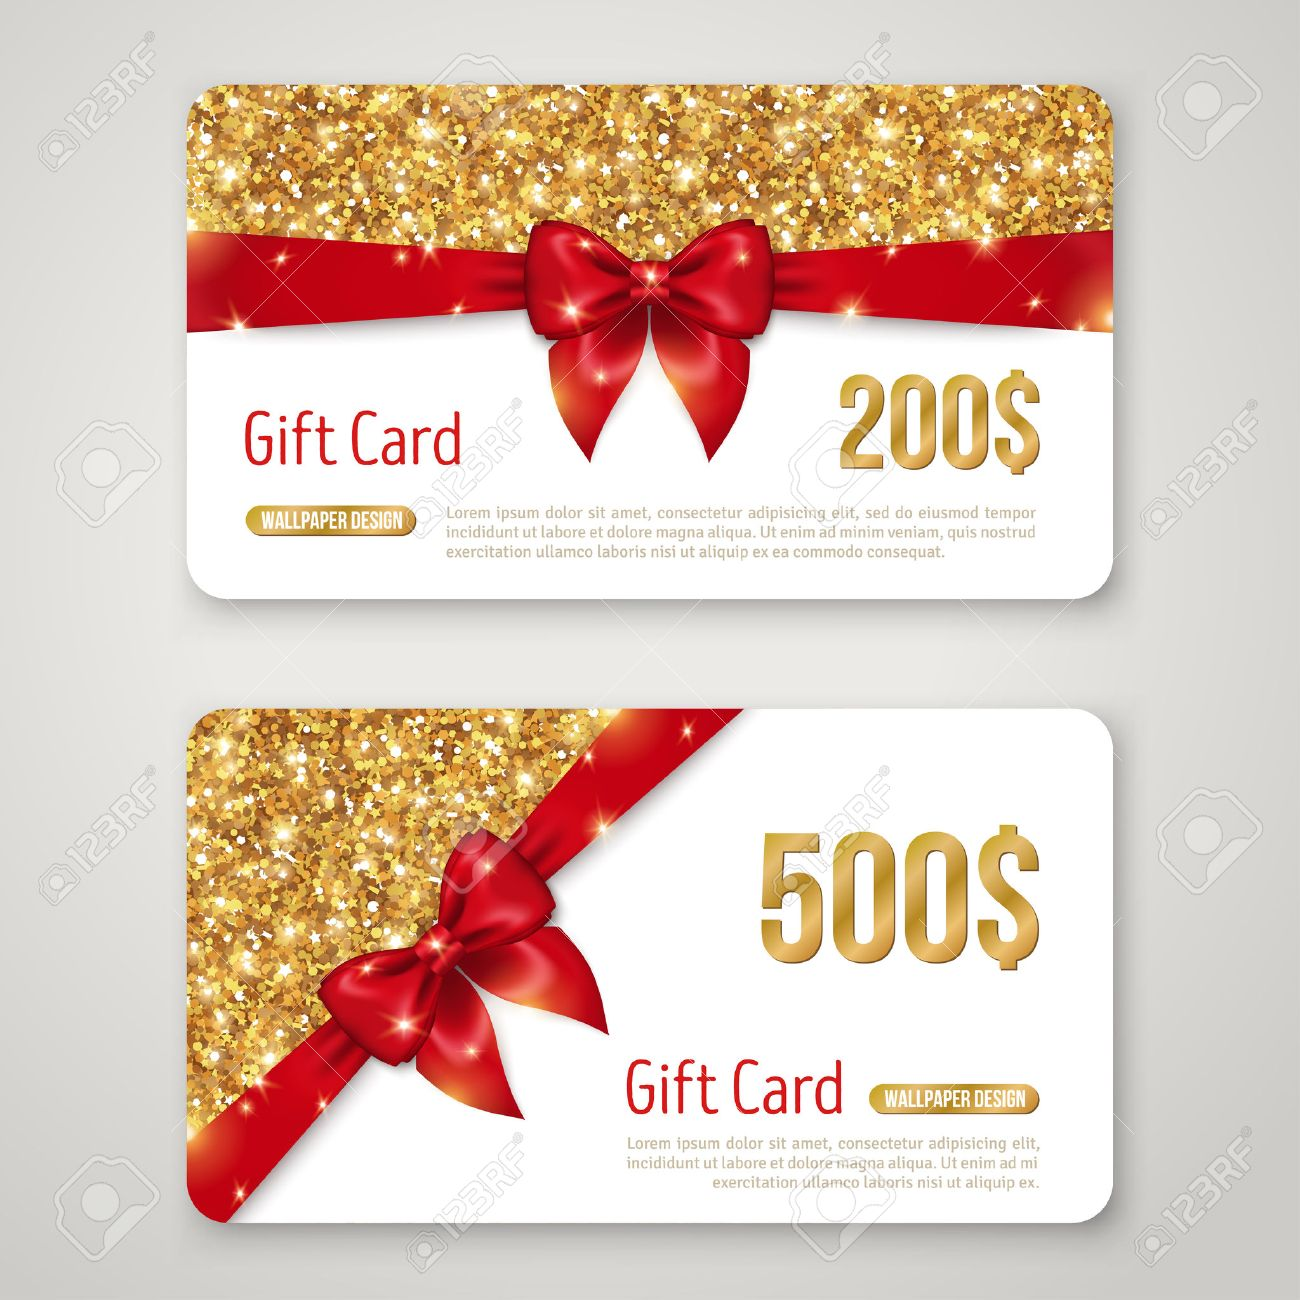 Gift Card Design With Gold Glitter Texture And Red Bow Invitation – Voucher Card Template